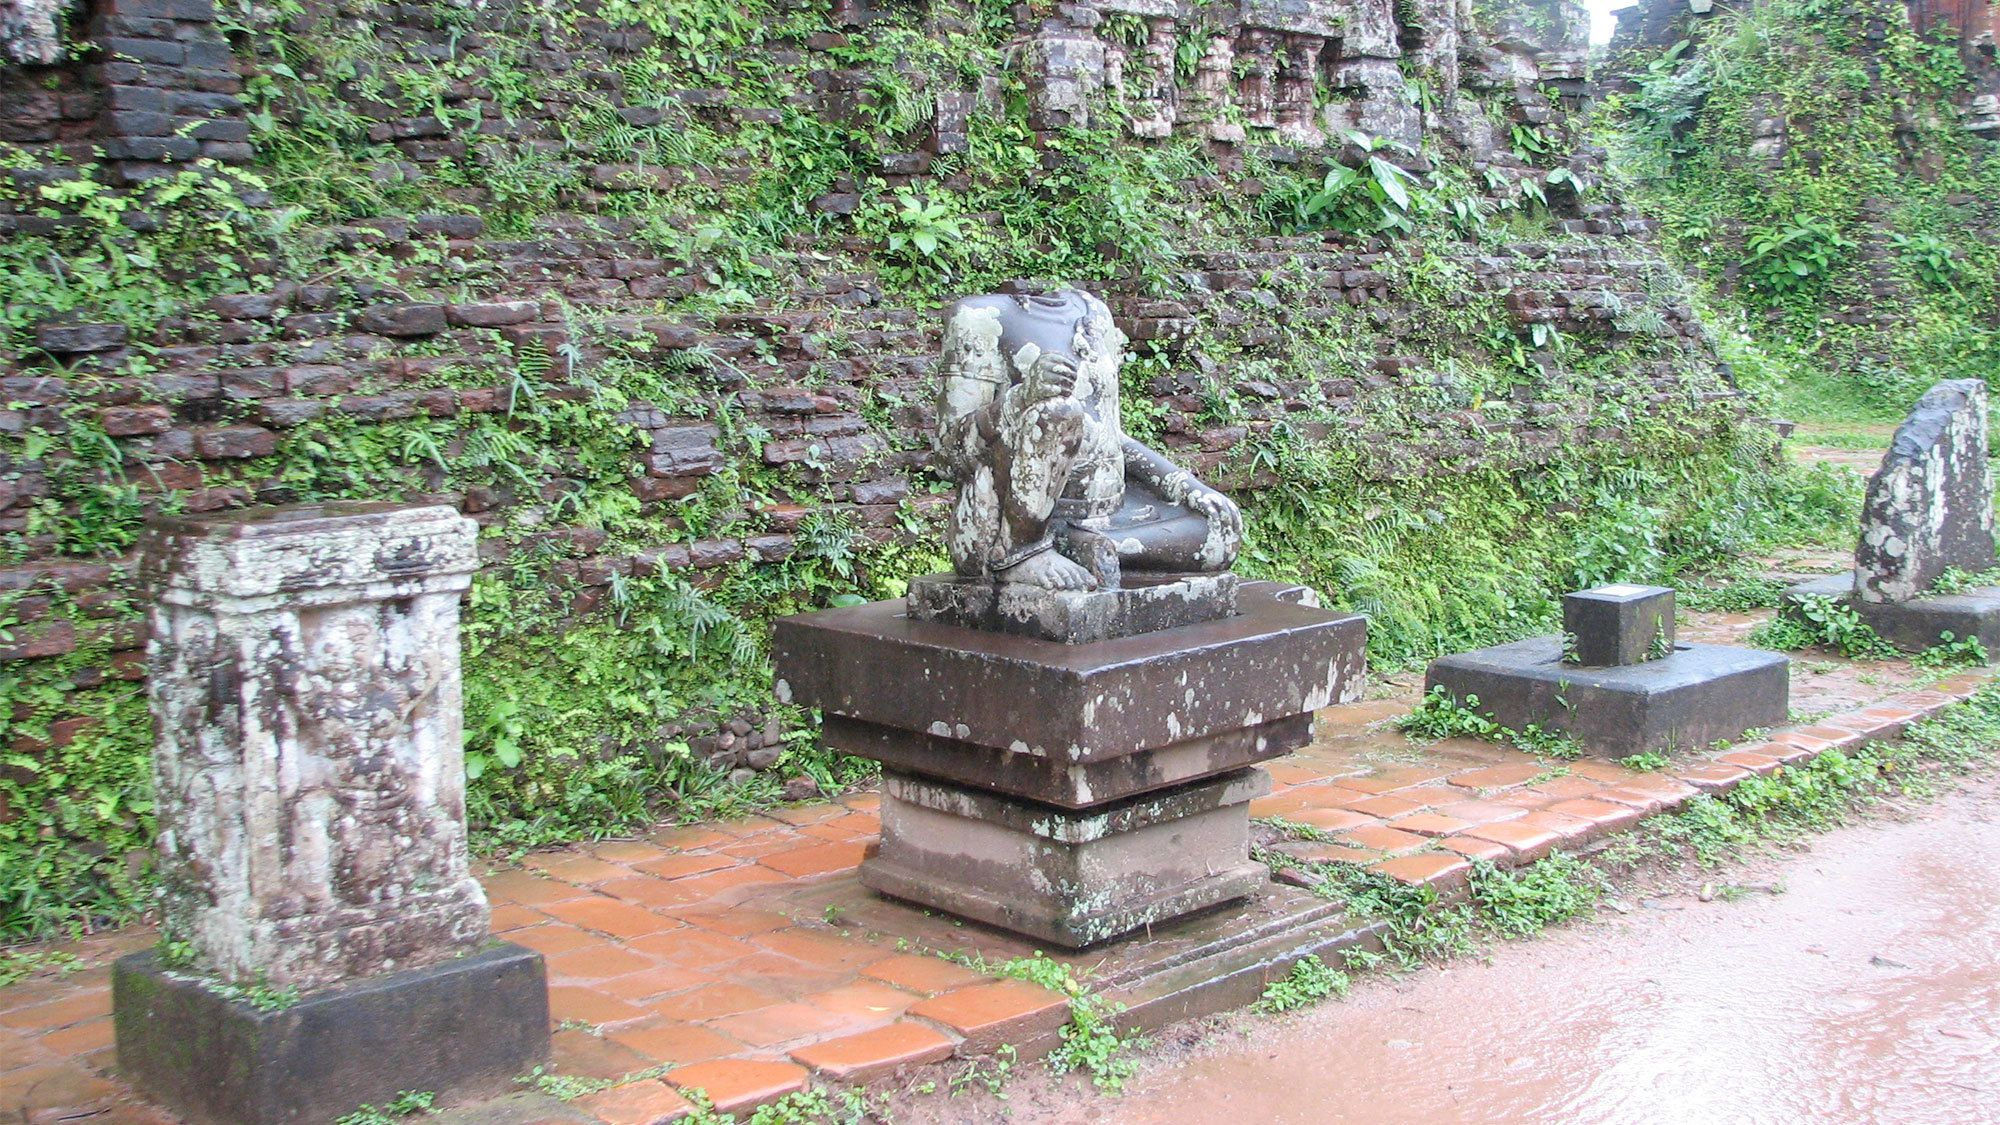 Statues on the My Son Tour in Hanoi, Vietnam